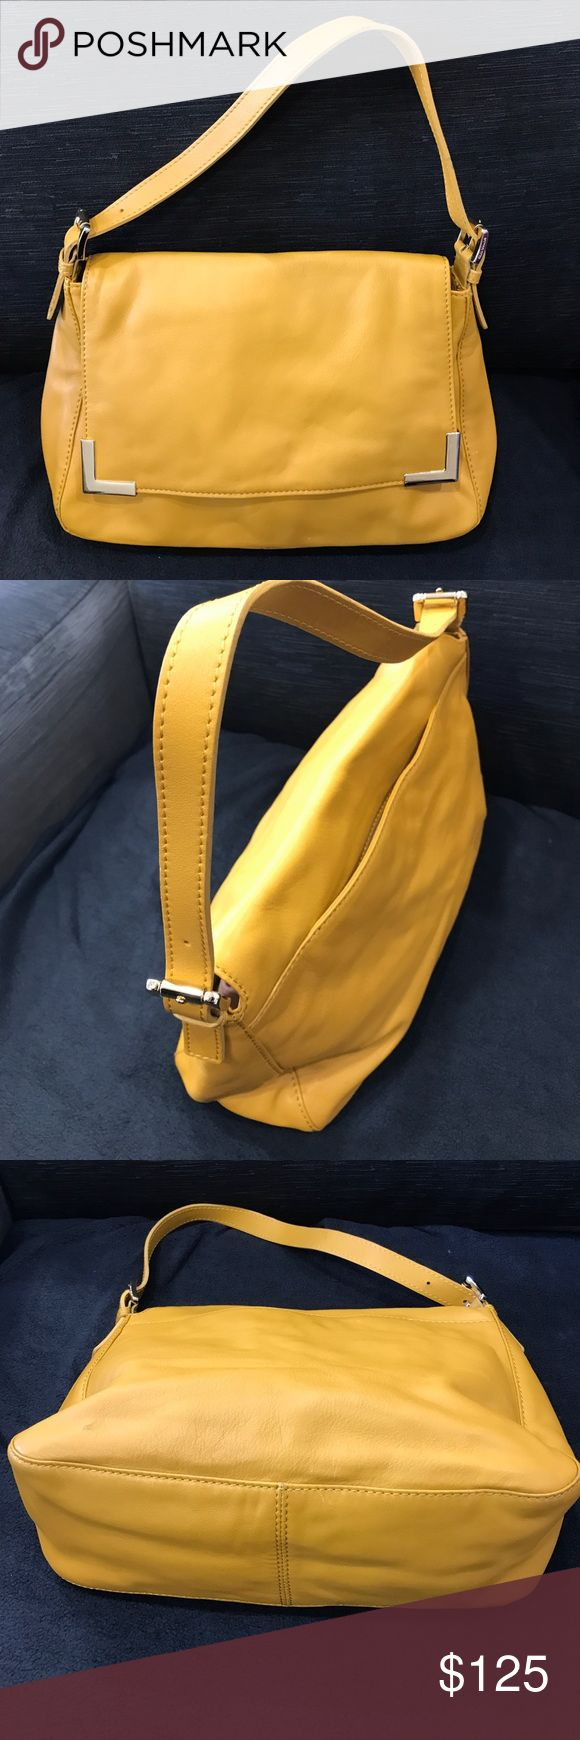 Michael Kors bag Gorgeous soft leather small size bag. Michael Kors Bags Shoulder Bags